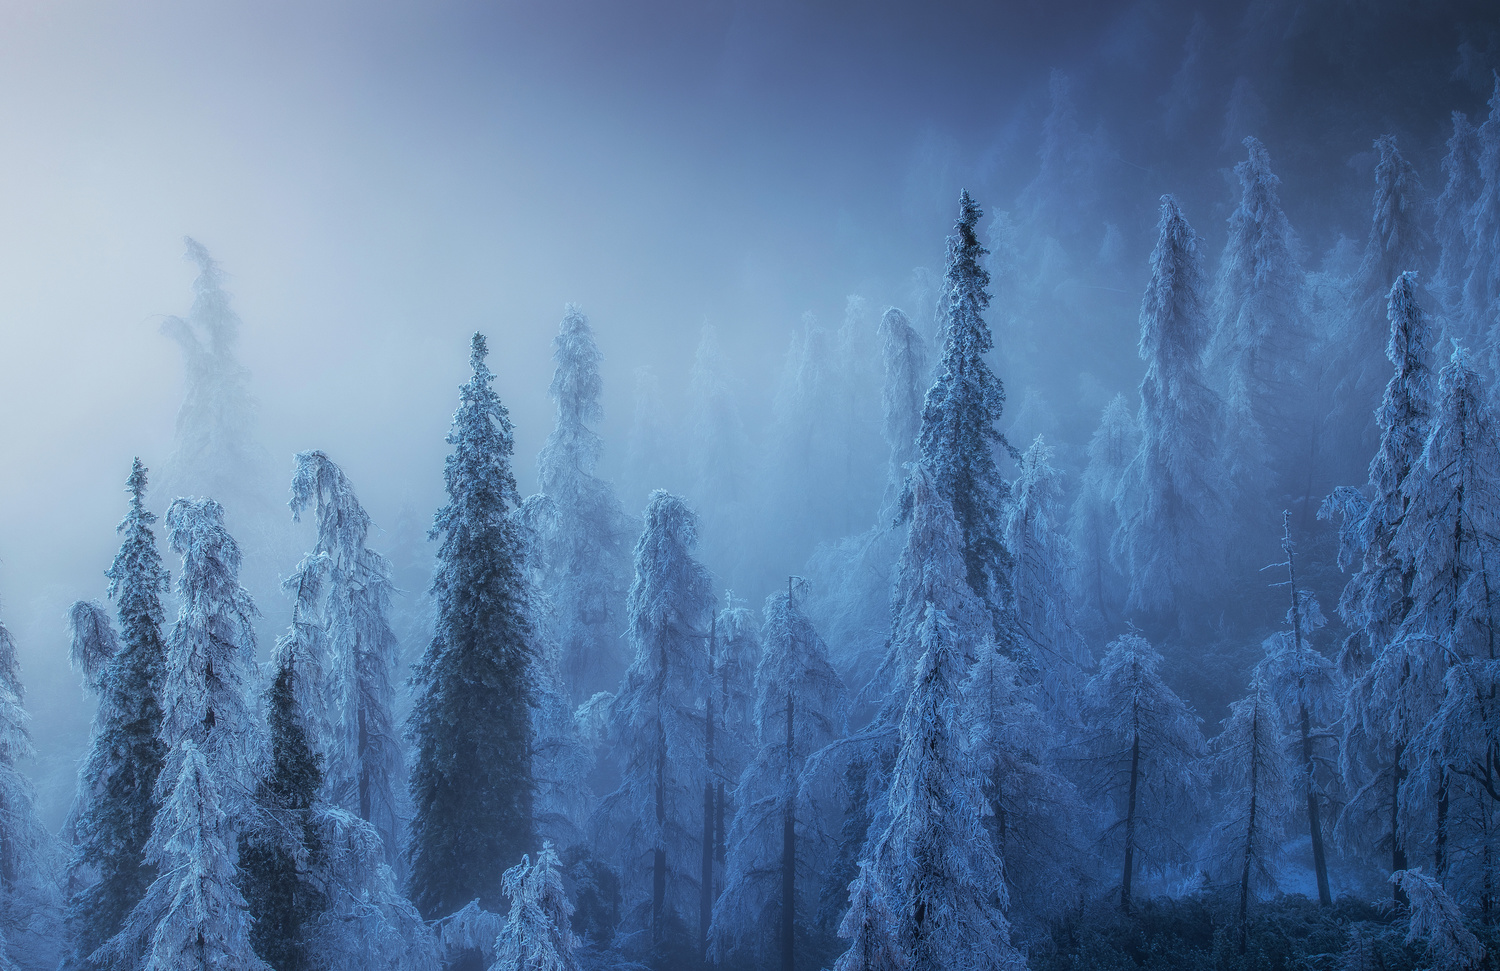 Enchanted winter forest by Ales Krivec